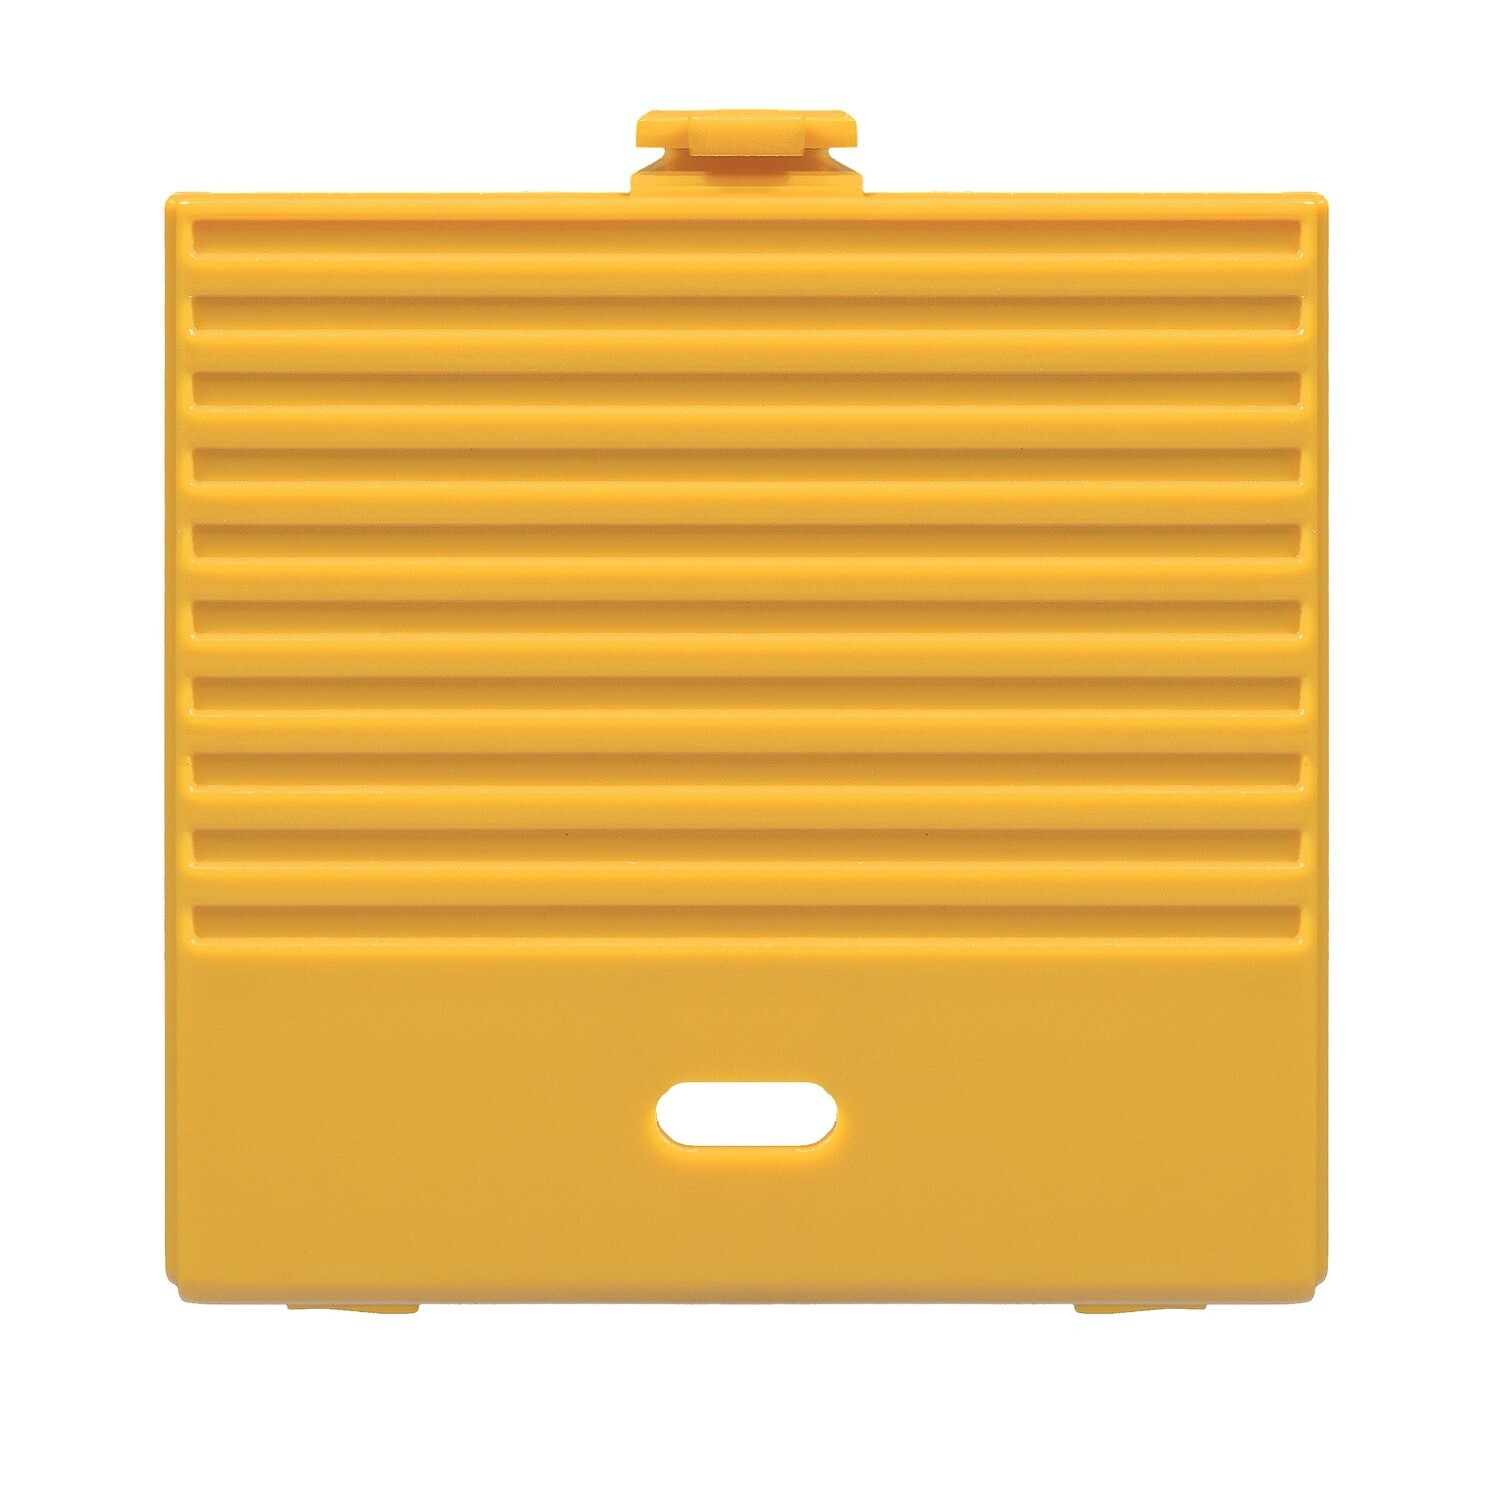 Game Boy Original USB-C Battery Cover (Yellow)